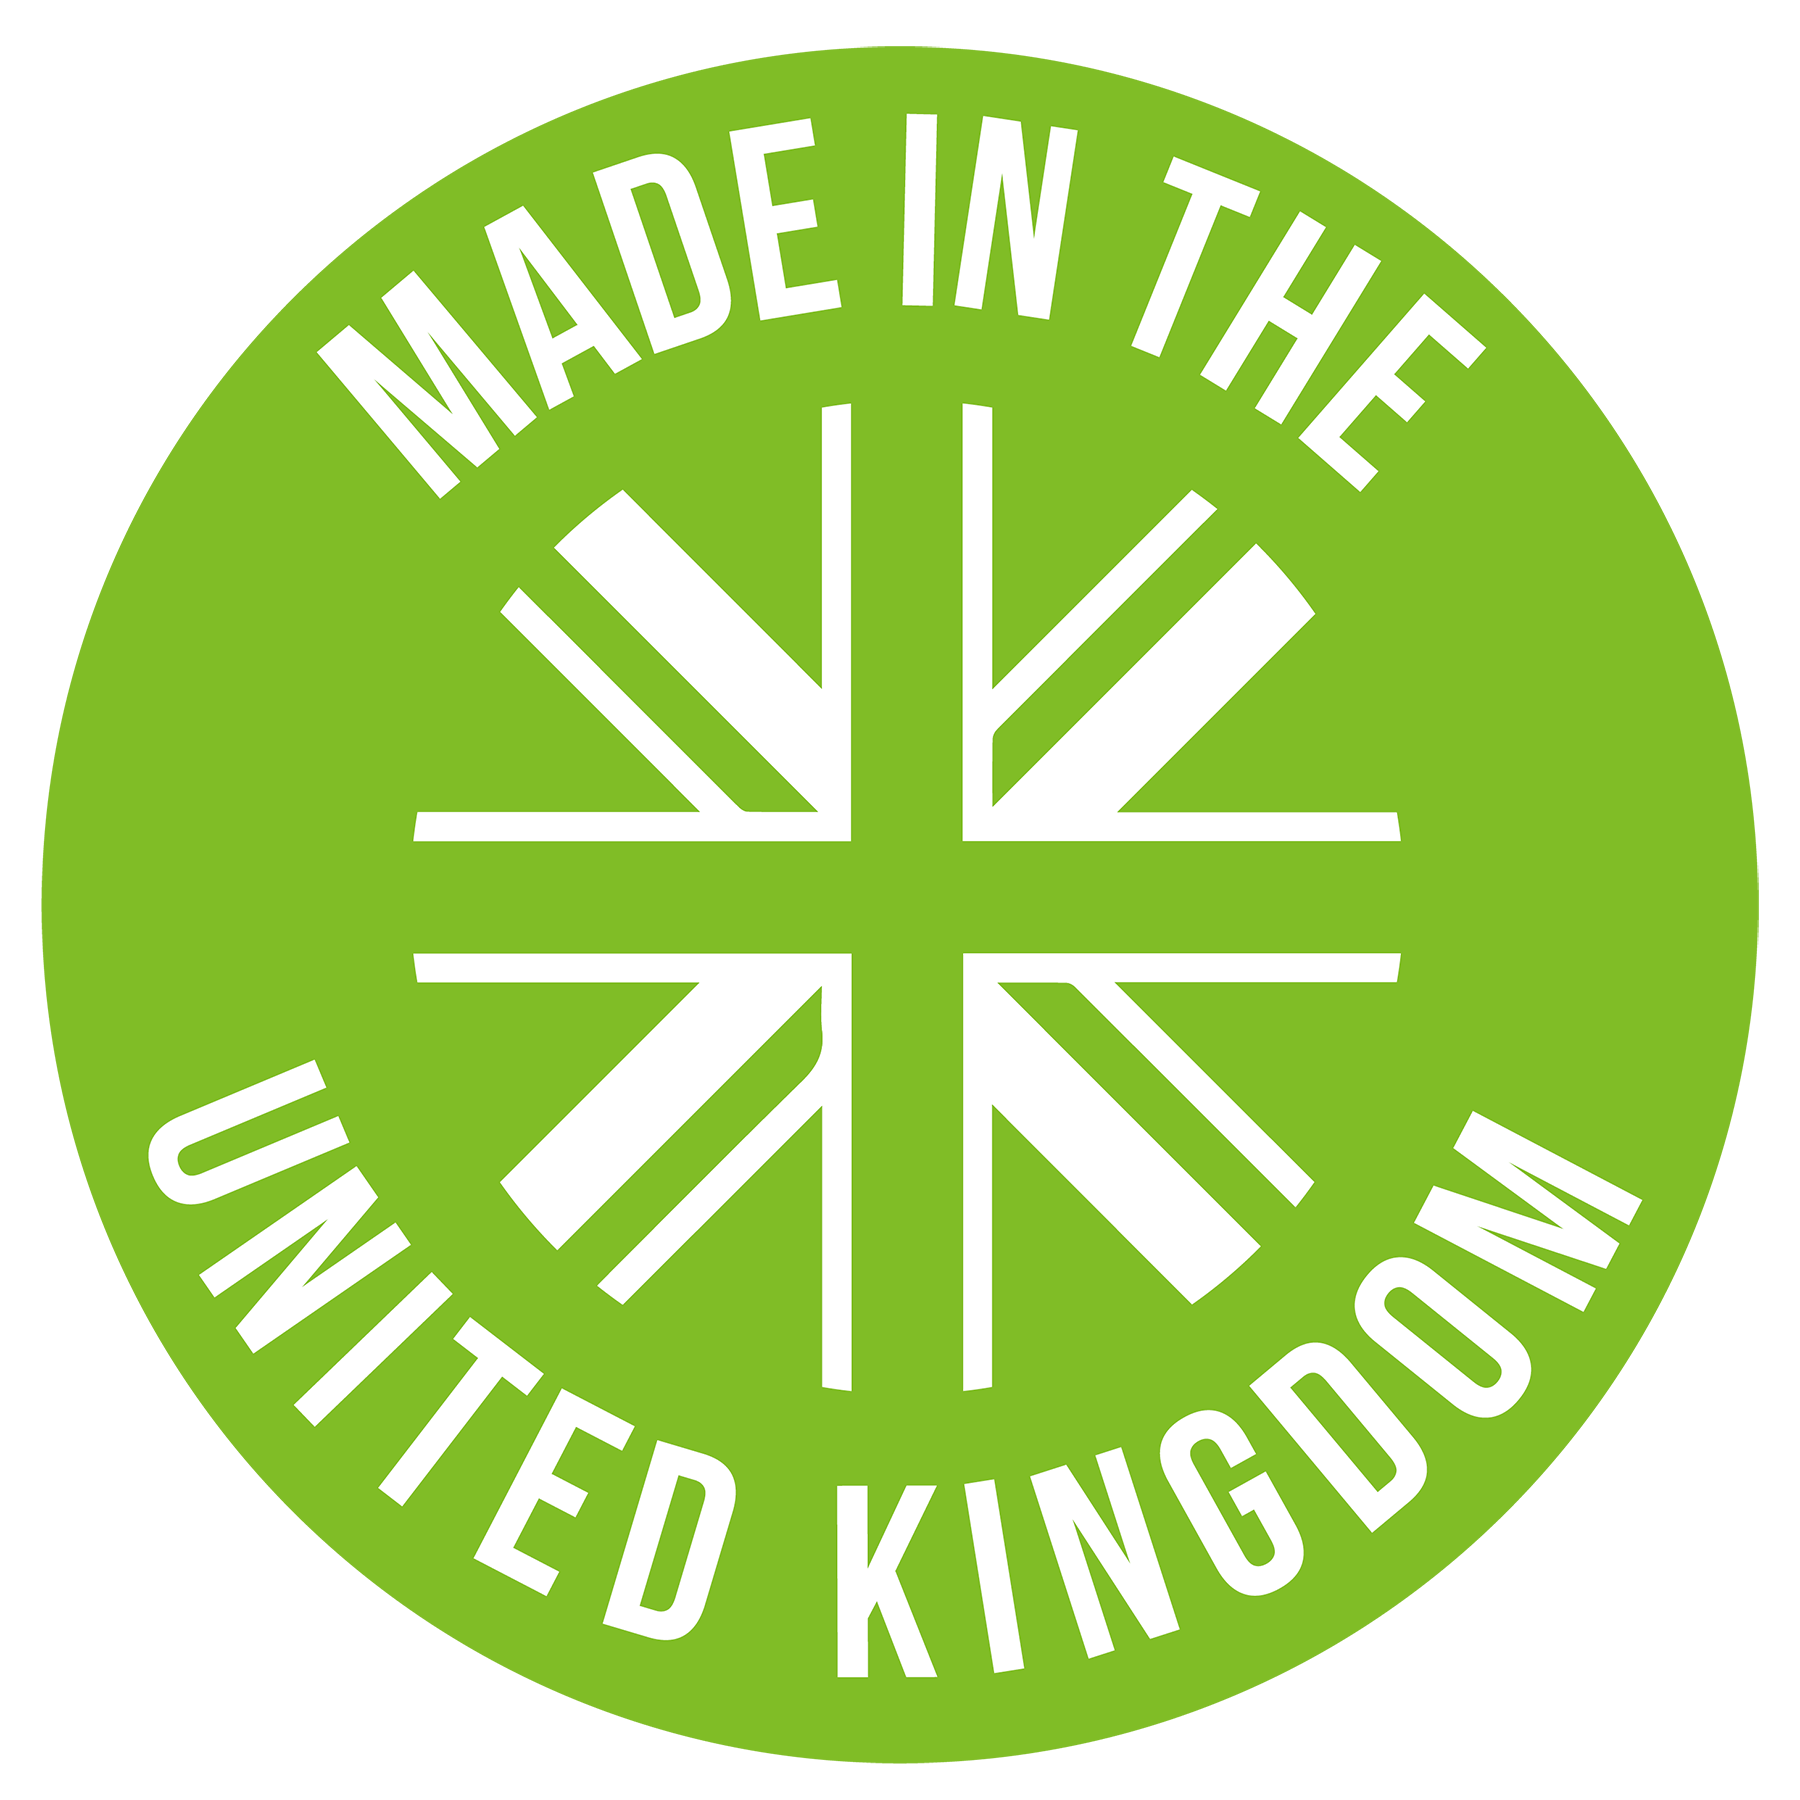 Made in the United Kingdom stamp